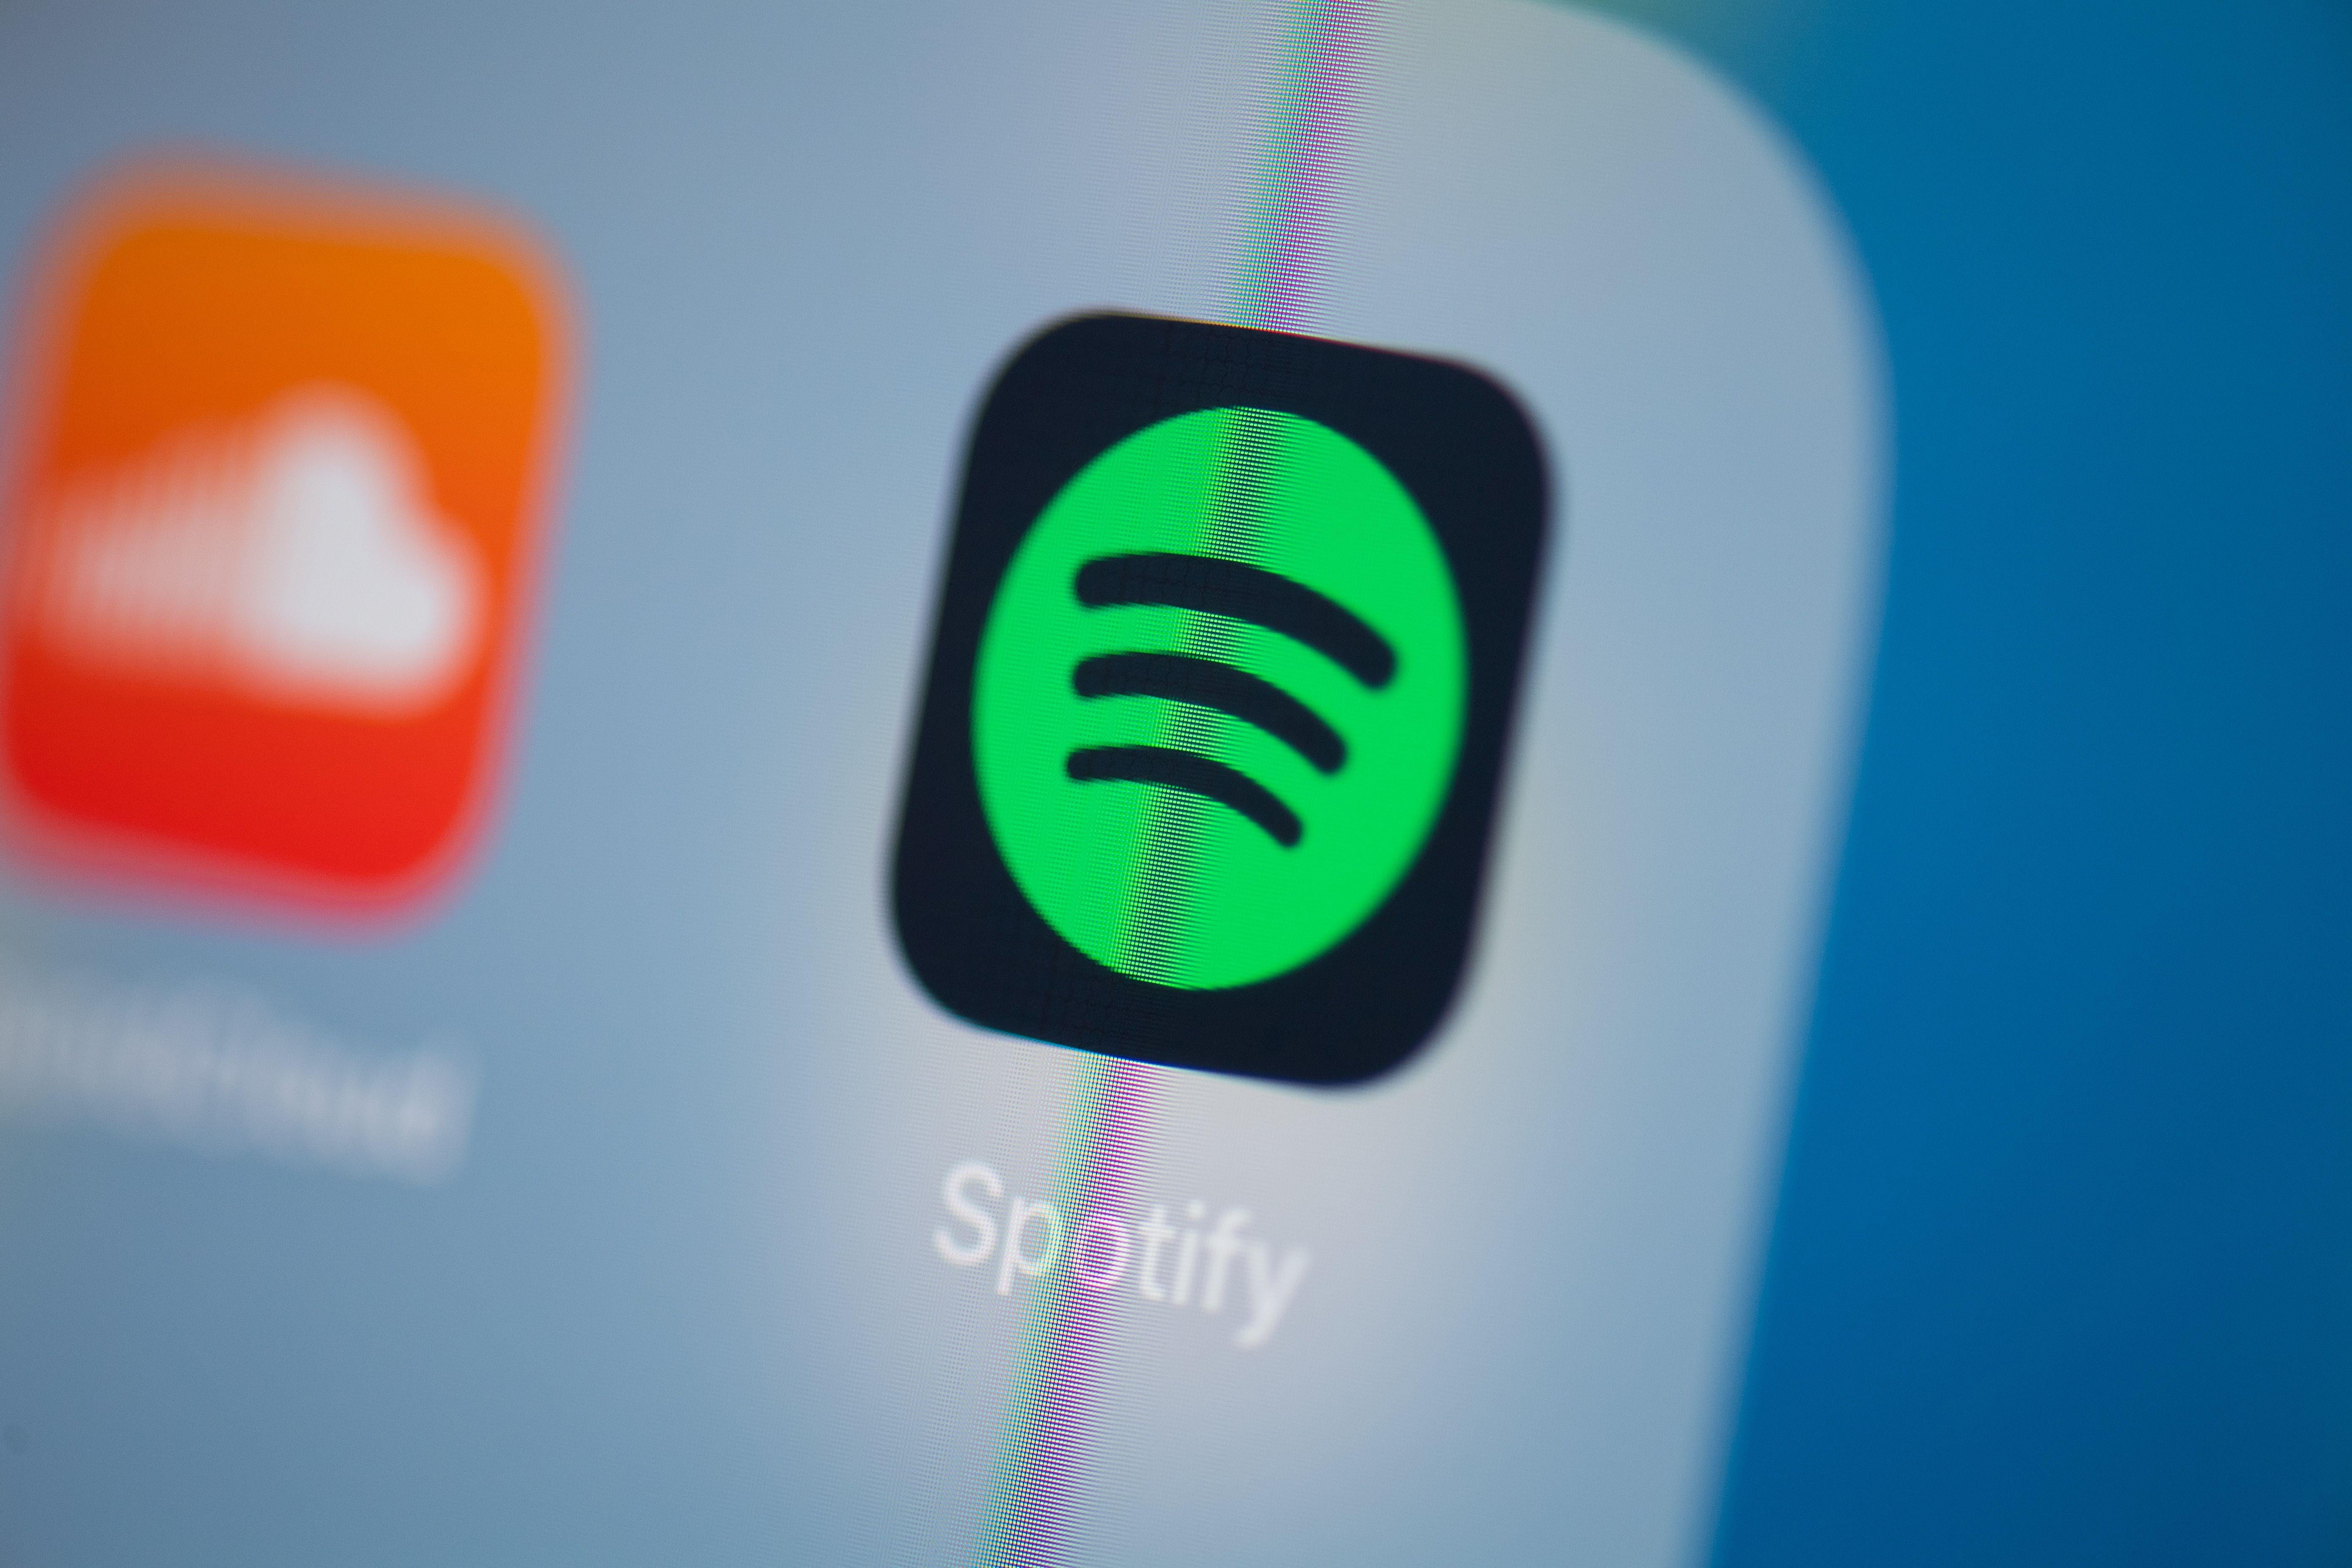 Streaming Needs to Pay Artists More—but There's an Idea From China That Could Help